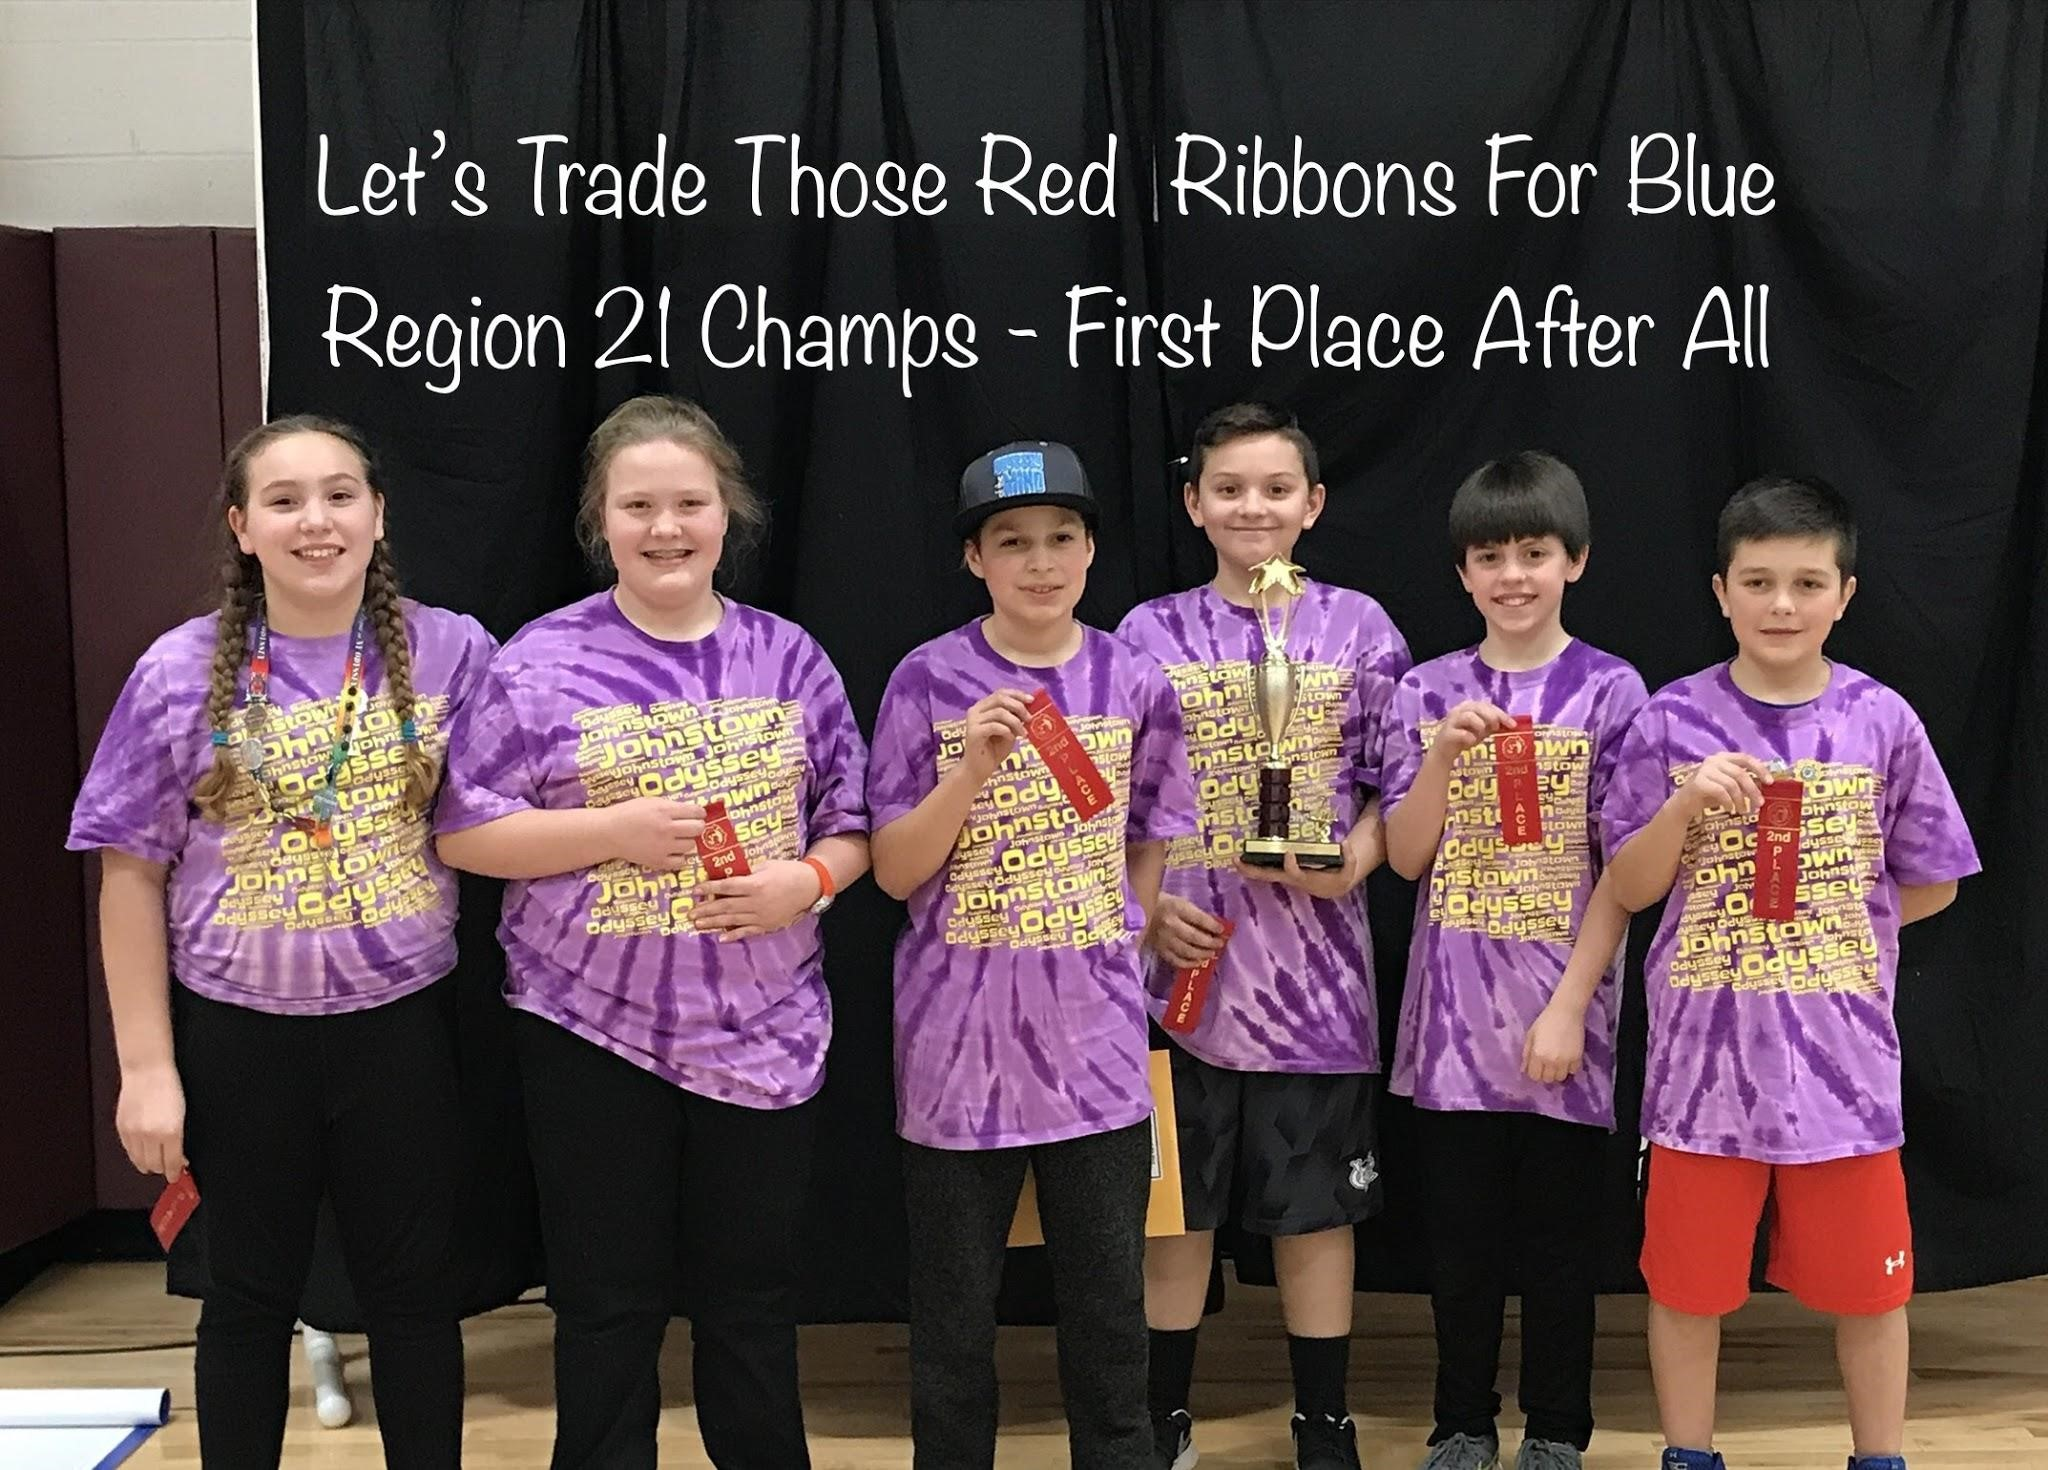 6th Grade Structure Team @ Warren Street, Coached by Mr. Chad Kortz Due to a scoring error, this team was recognized for 2nd place at the awards program but wound up winning 1st in their problem and division!